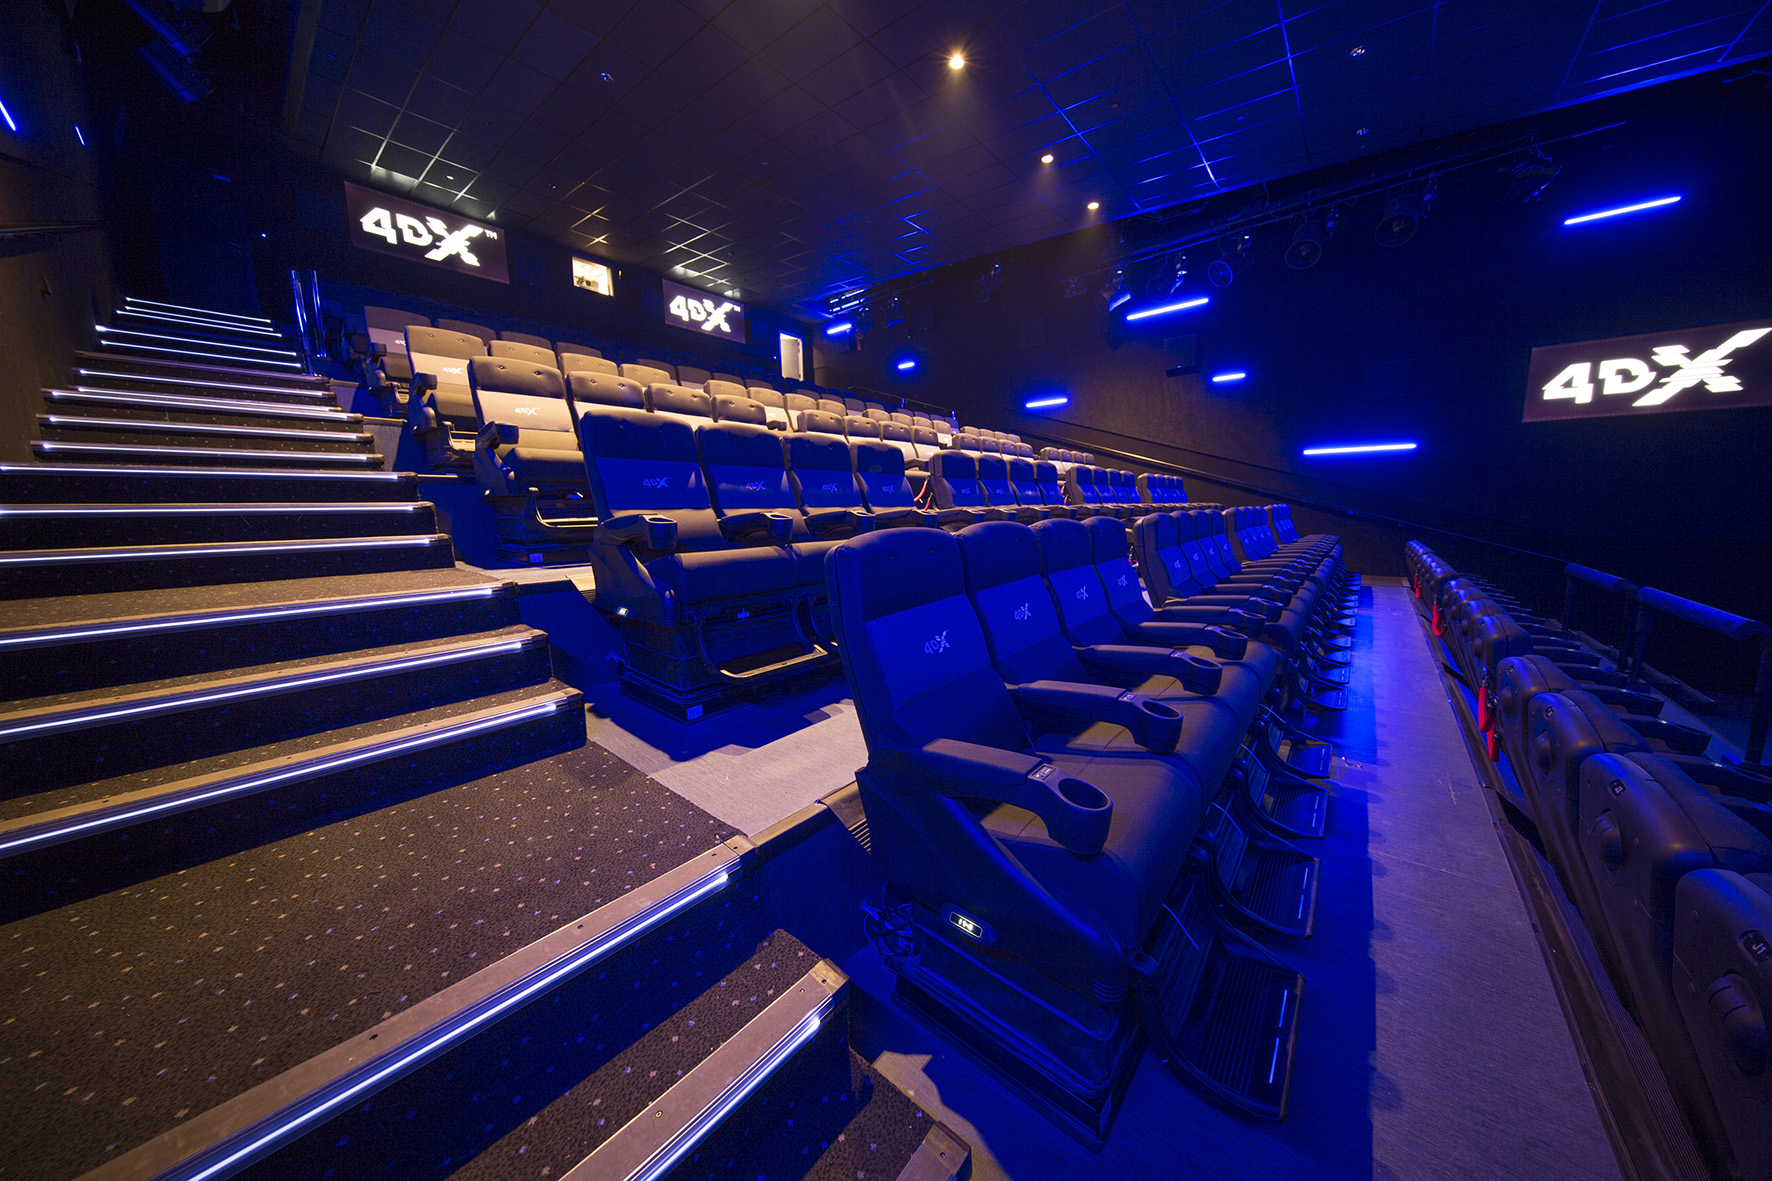 1-vox-cinemas-4dx